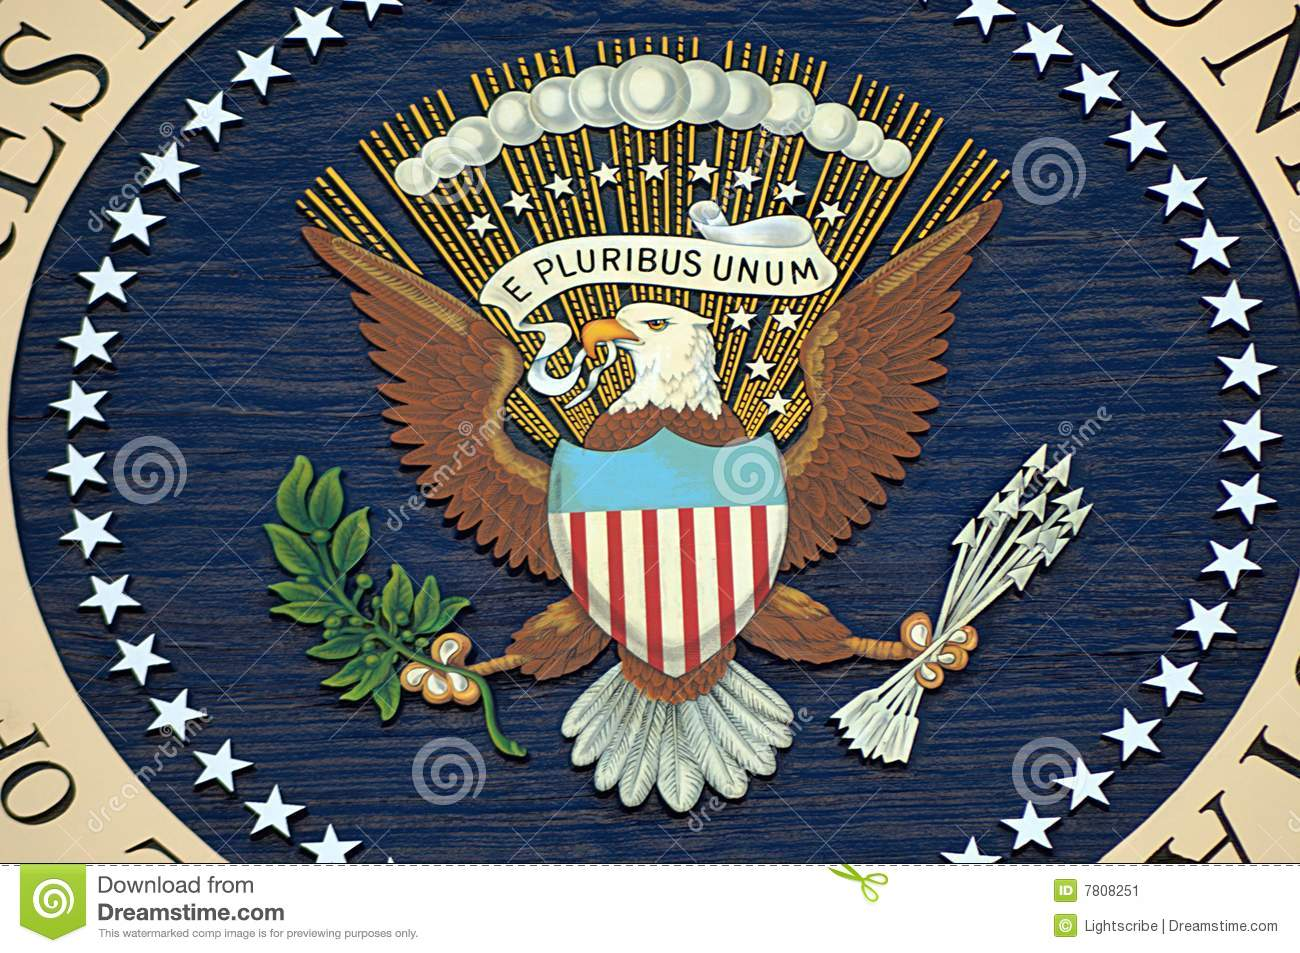 Resultado de imagem para picture of the american eagle with olives and arrows